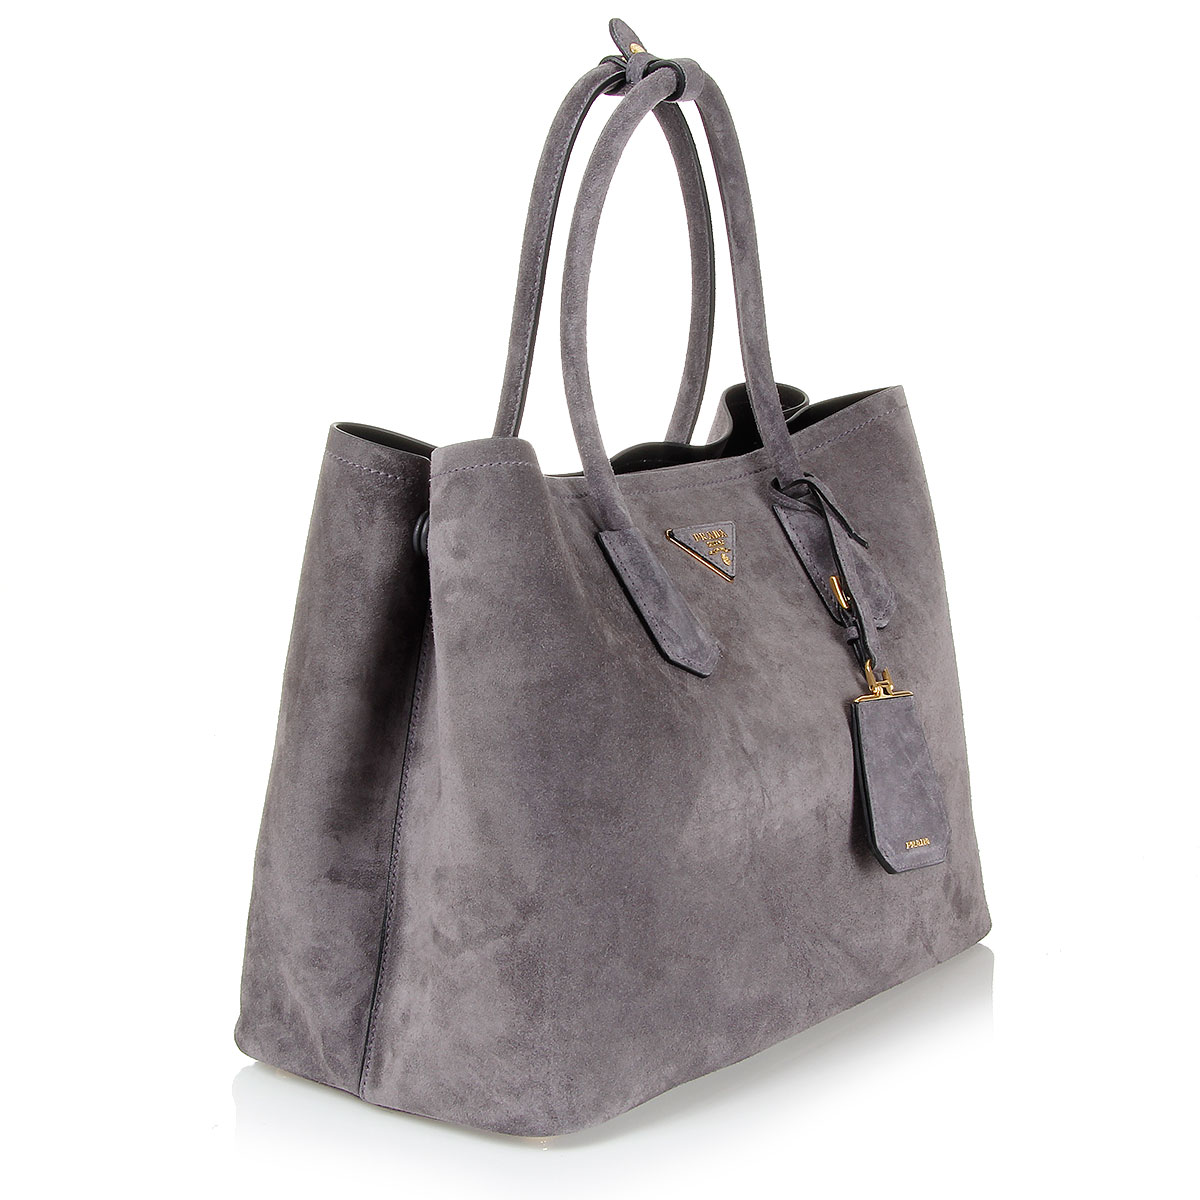 Prada Women Suede bag with removable shoulder strap - Spence Outlet